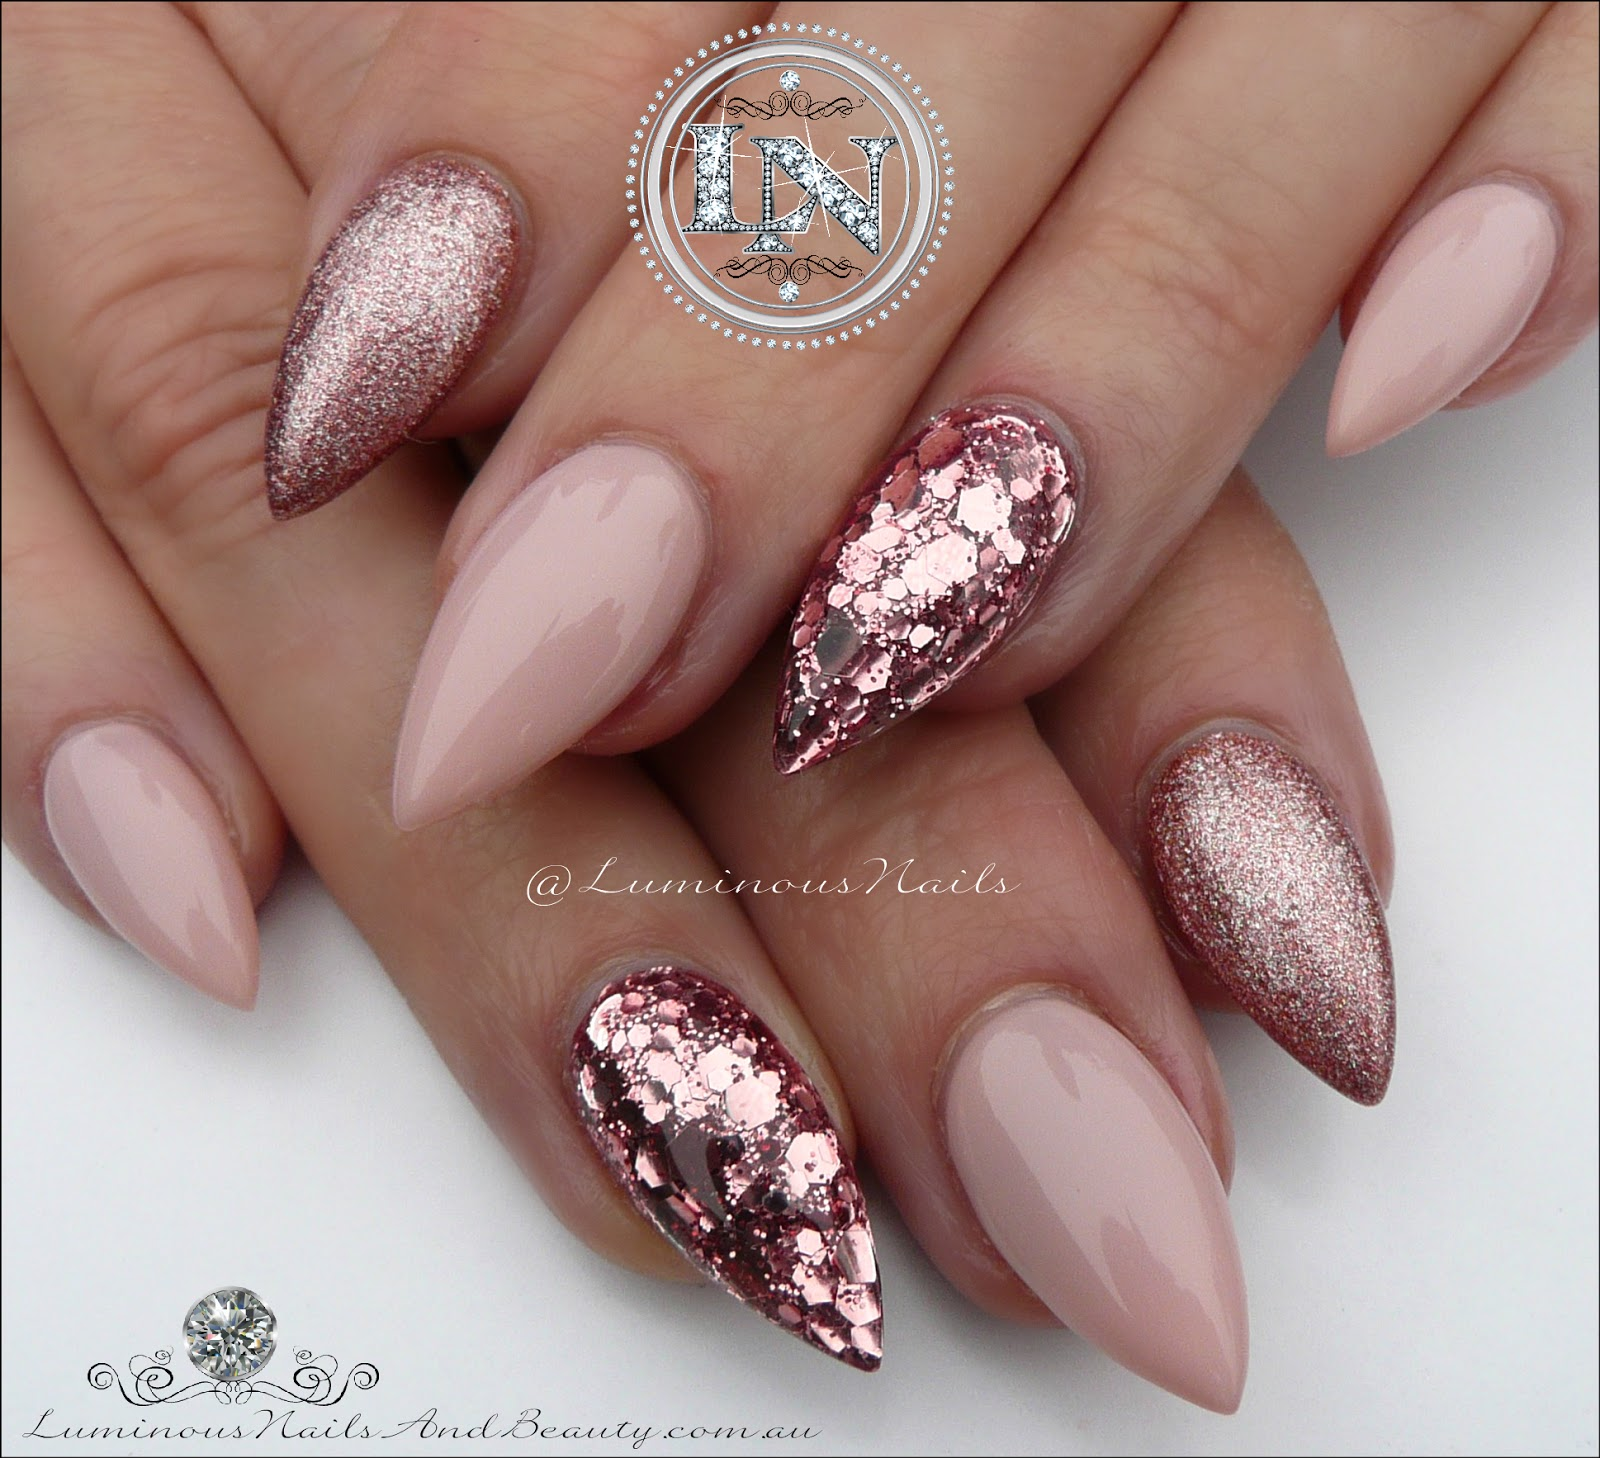 Luminous Nails: Nude Nails. Champagen Pink Glitter Nails.